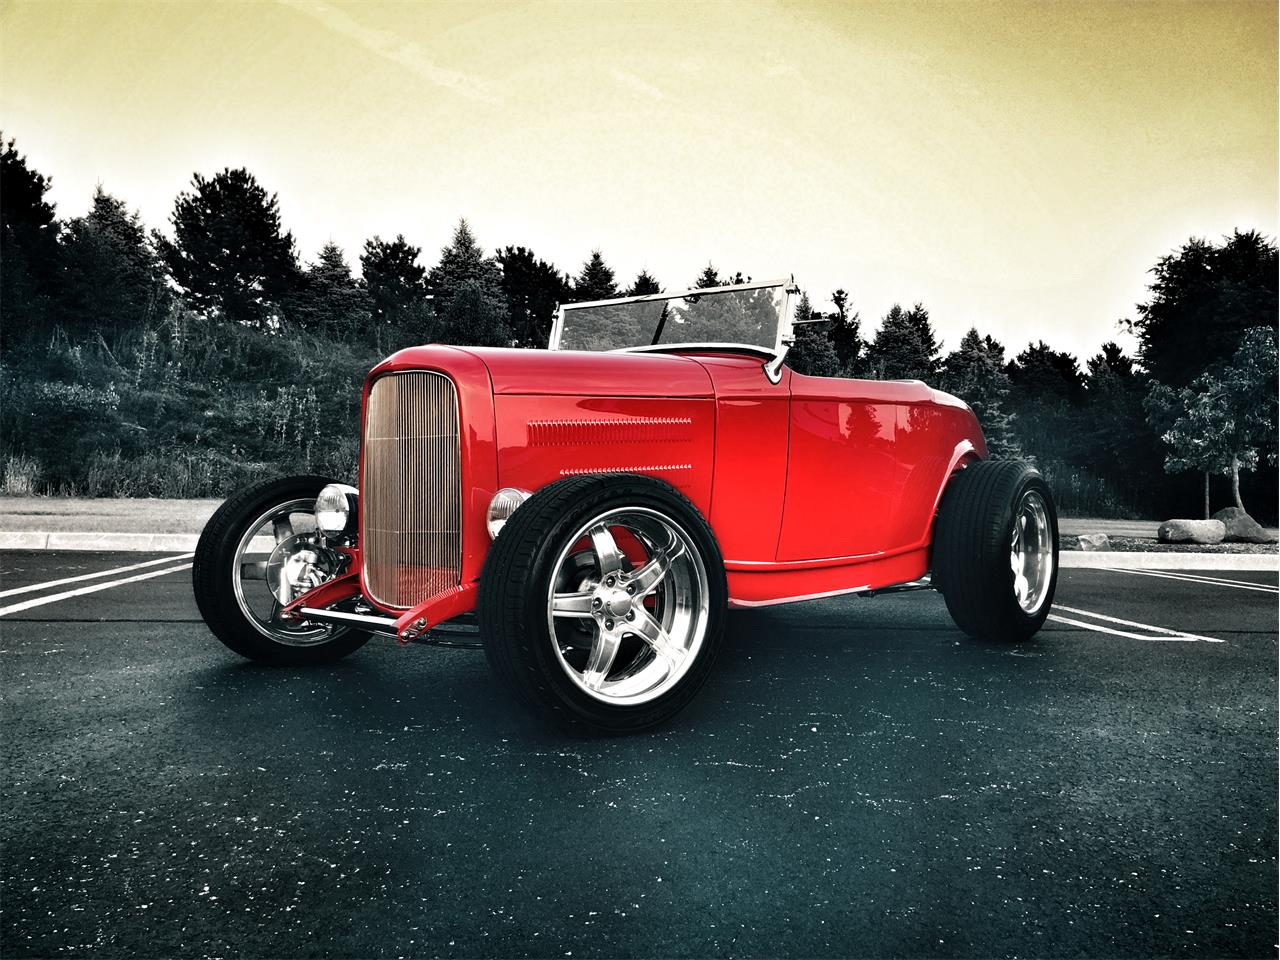 Large Picture of Classic '32 Ford Roadster - $42,900.00 Offered by a Private Seller - OUMC